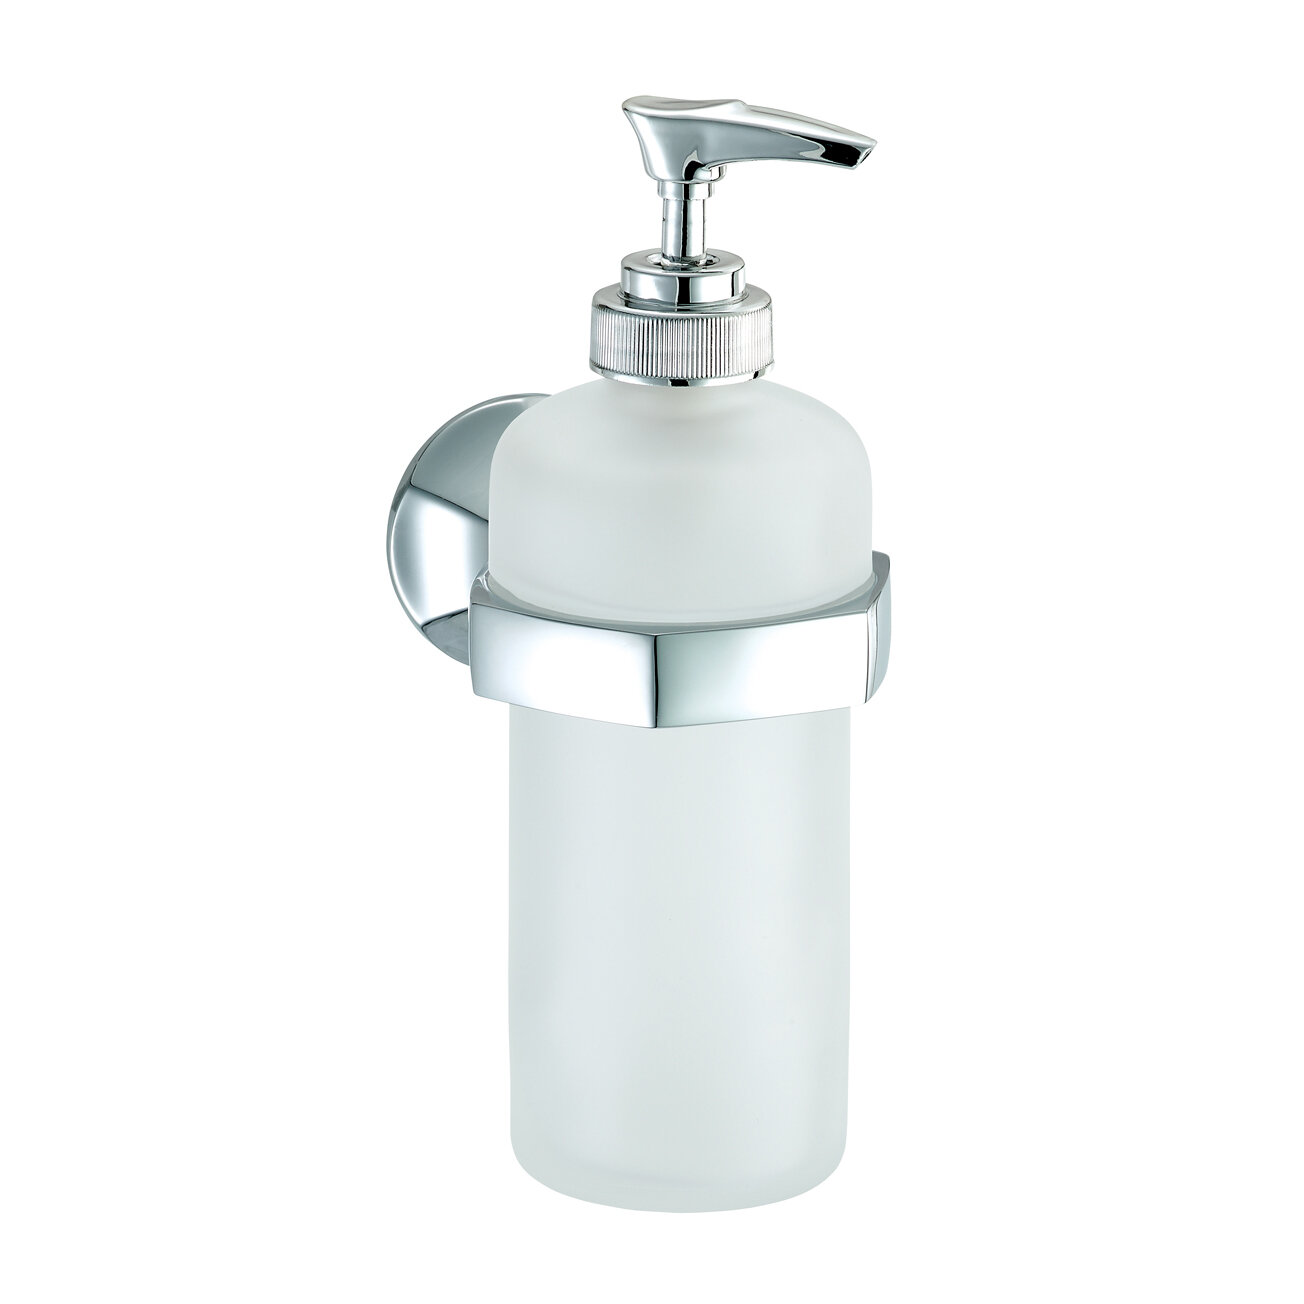 Claremont Soap Dispenser